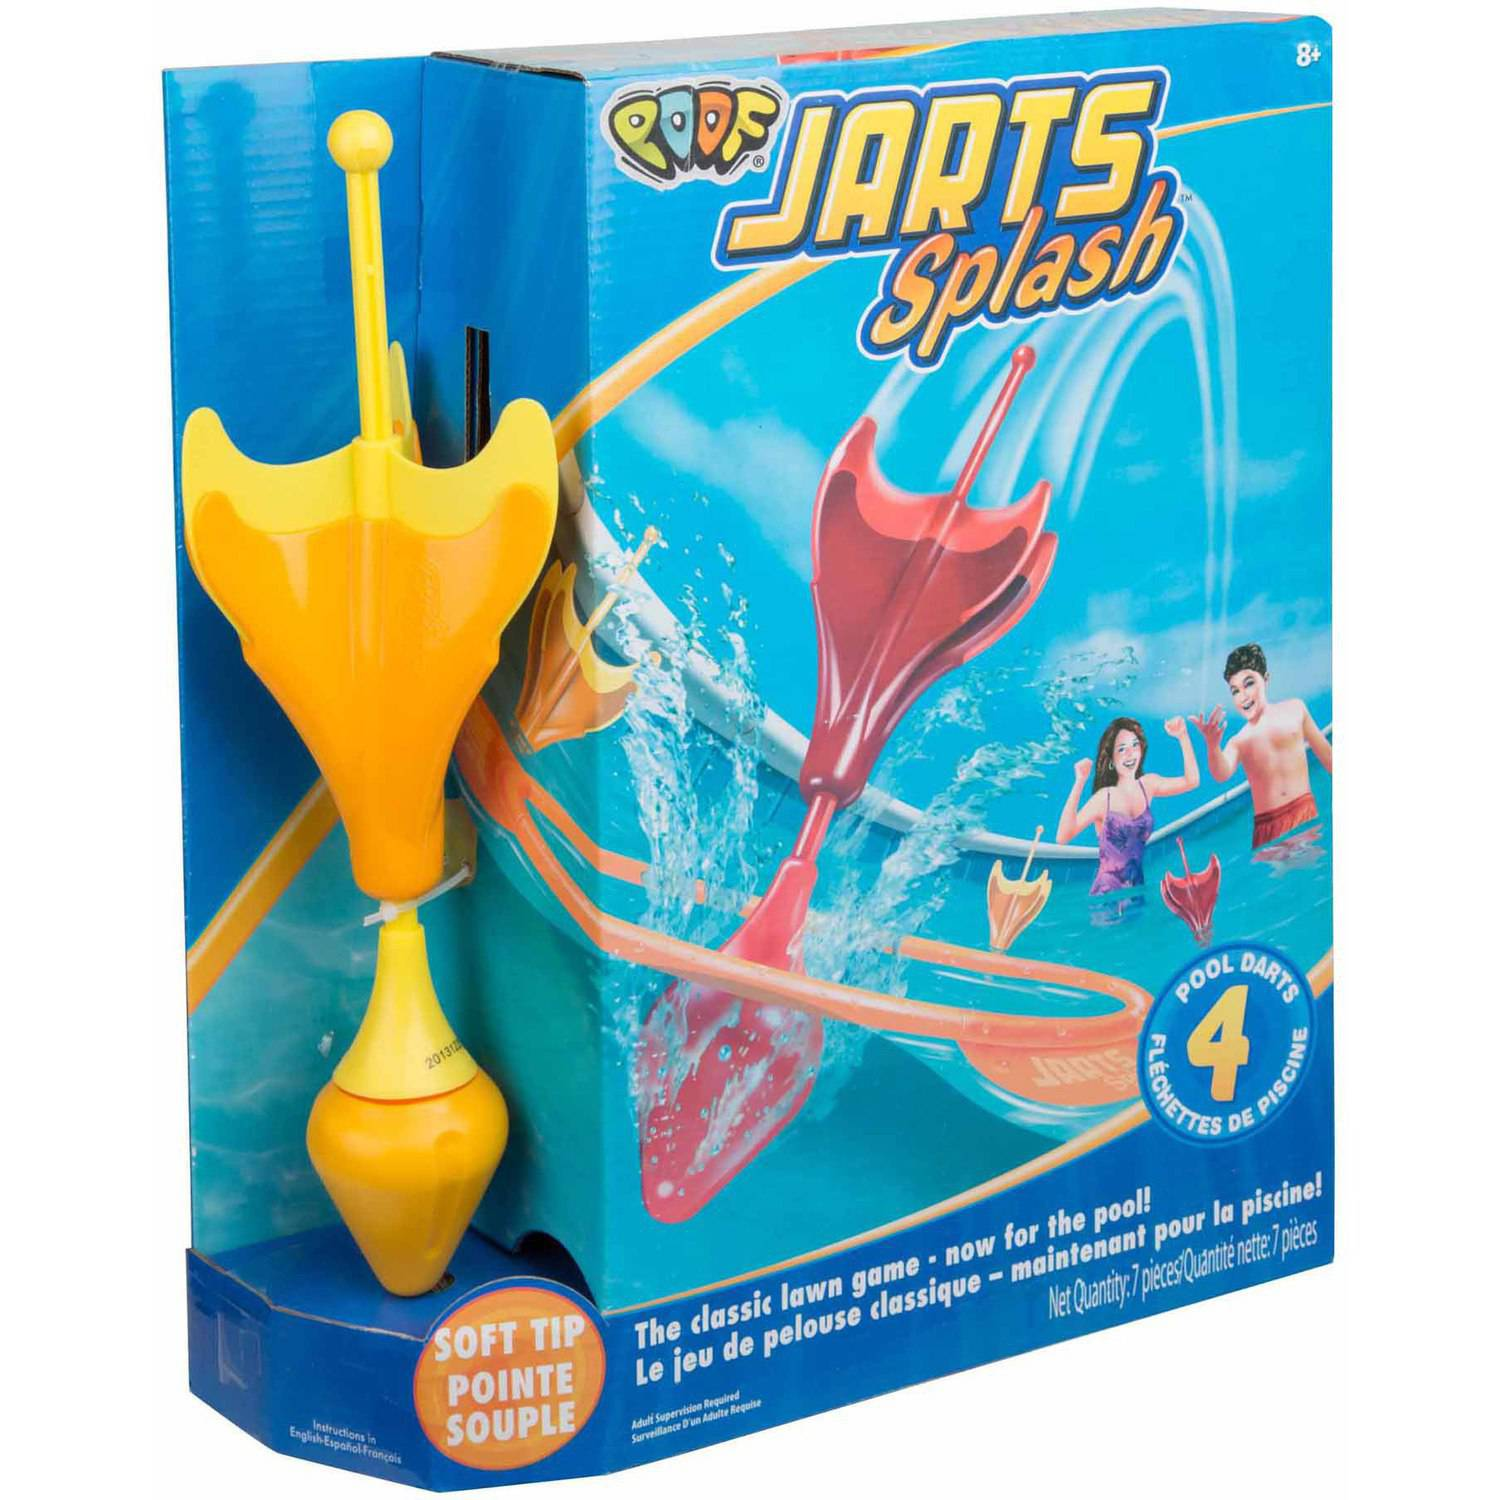 POOF Jarts Splash Target Dart Game for Pools